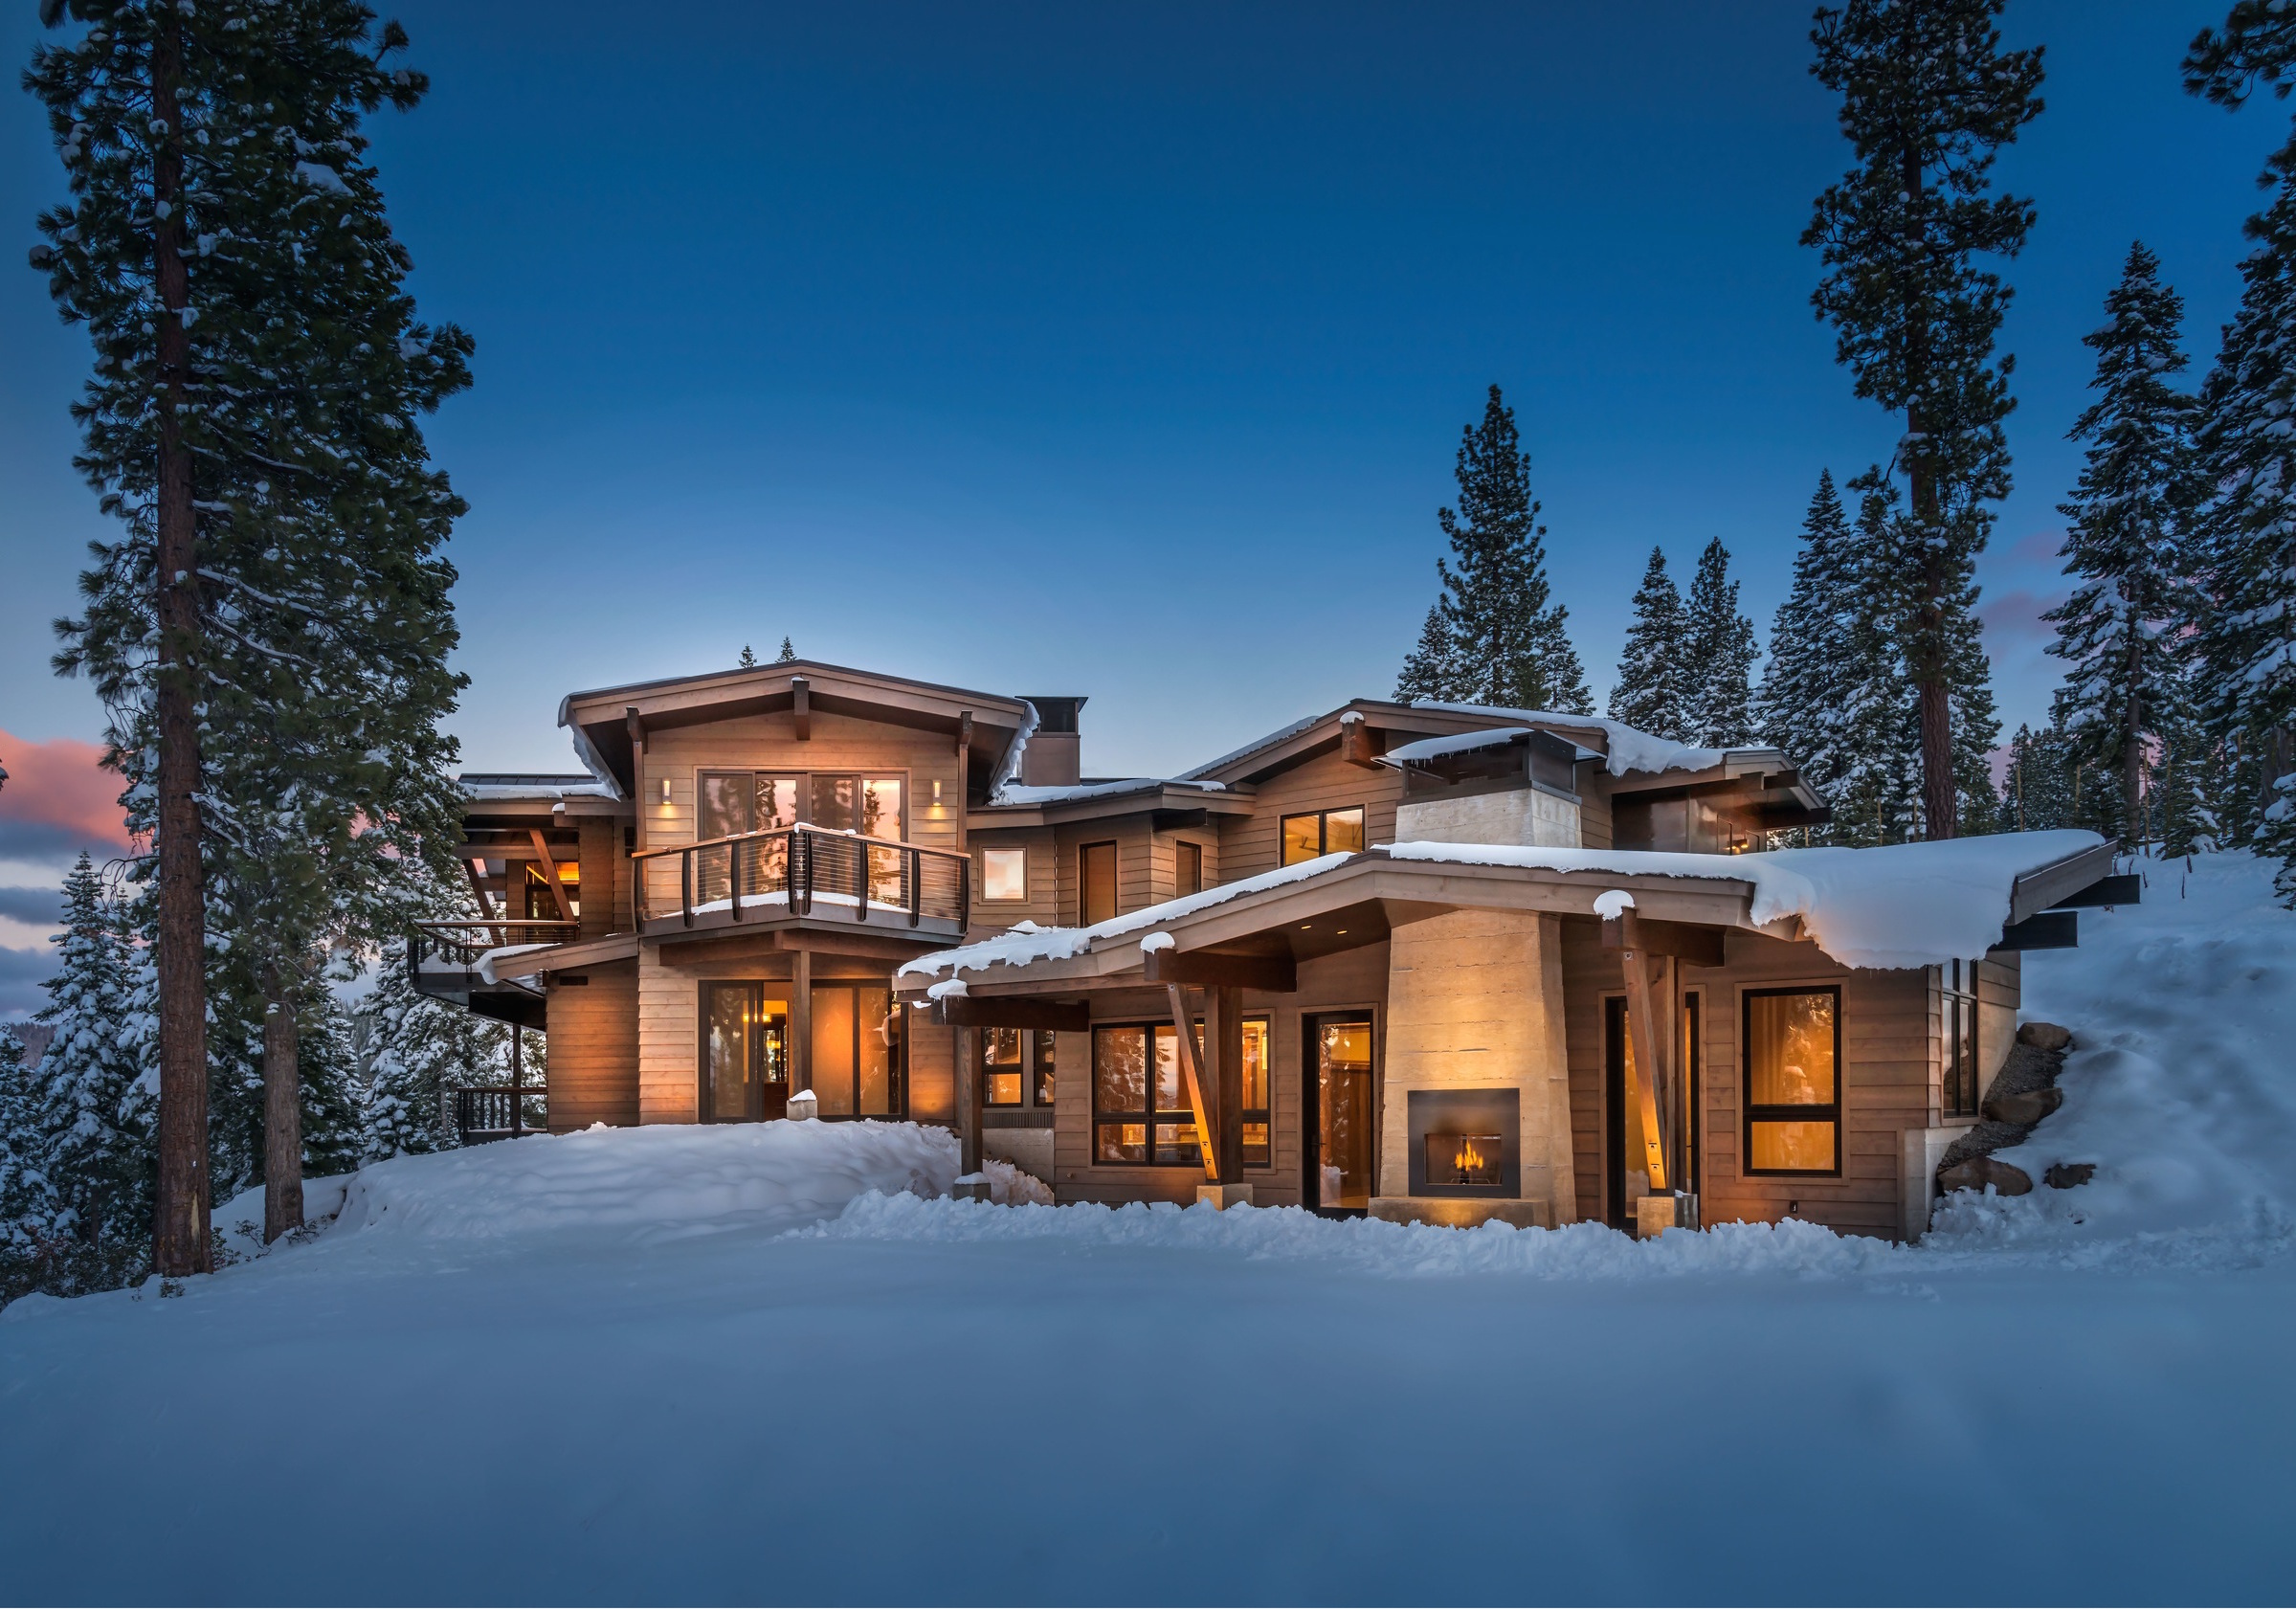 Mountainside At Northstar Unveils New Luxury Amenities And Programming Following Successful Sales Season